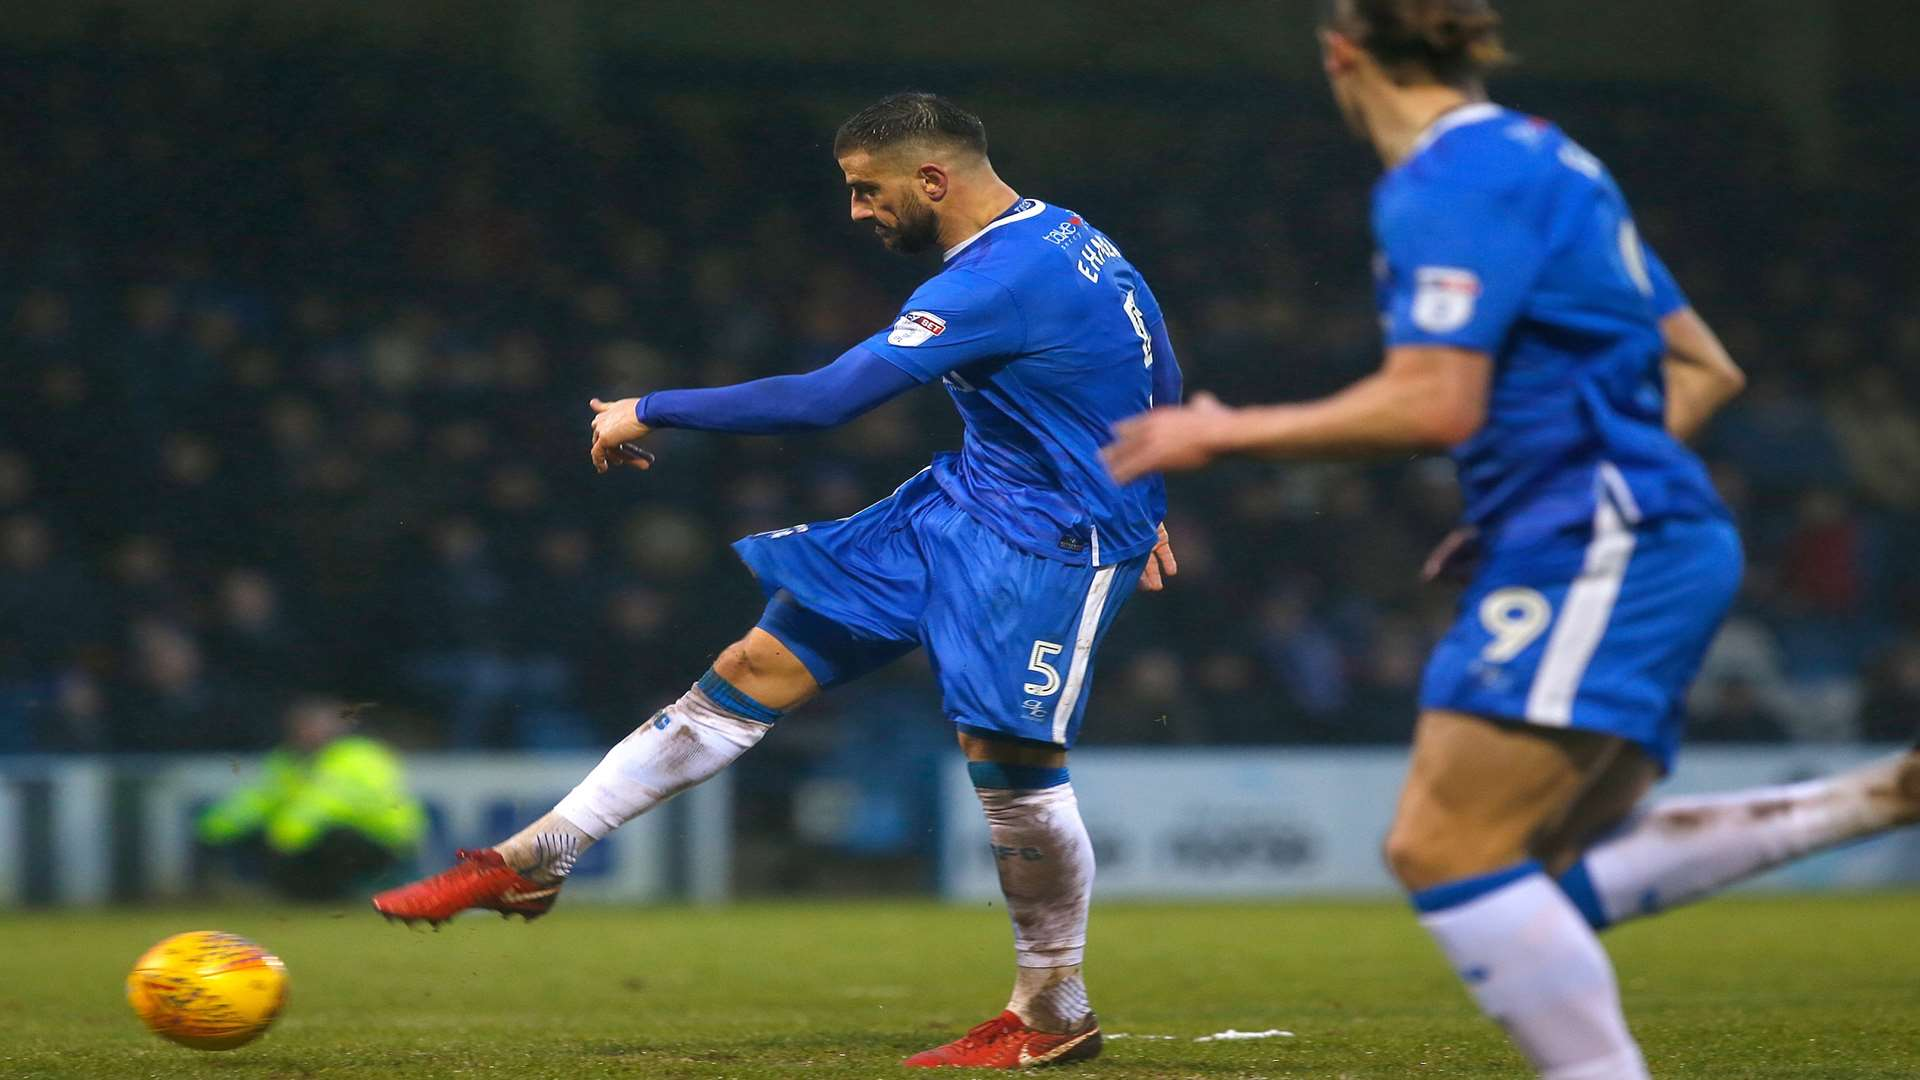 Max Ehmer scores Gillingham's stoppage-time equaliser against Peterborough Picture: Andy Jones